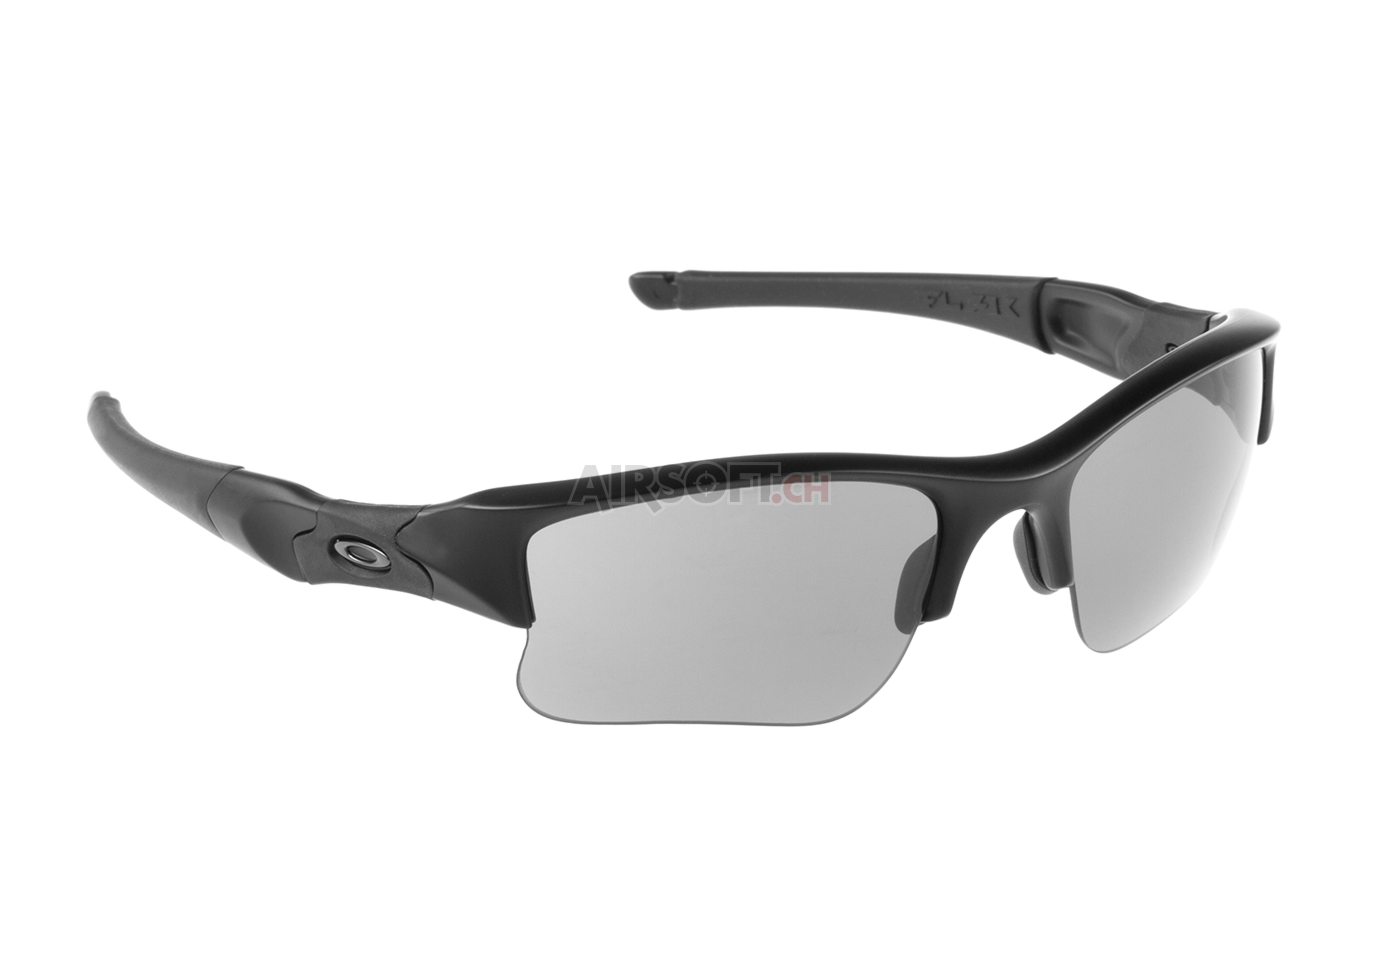 c336efdc47e SI Flak Jacket XLJ Black (Oakley) - Eyewear - Protective Equipment - www.